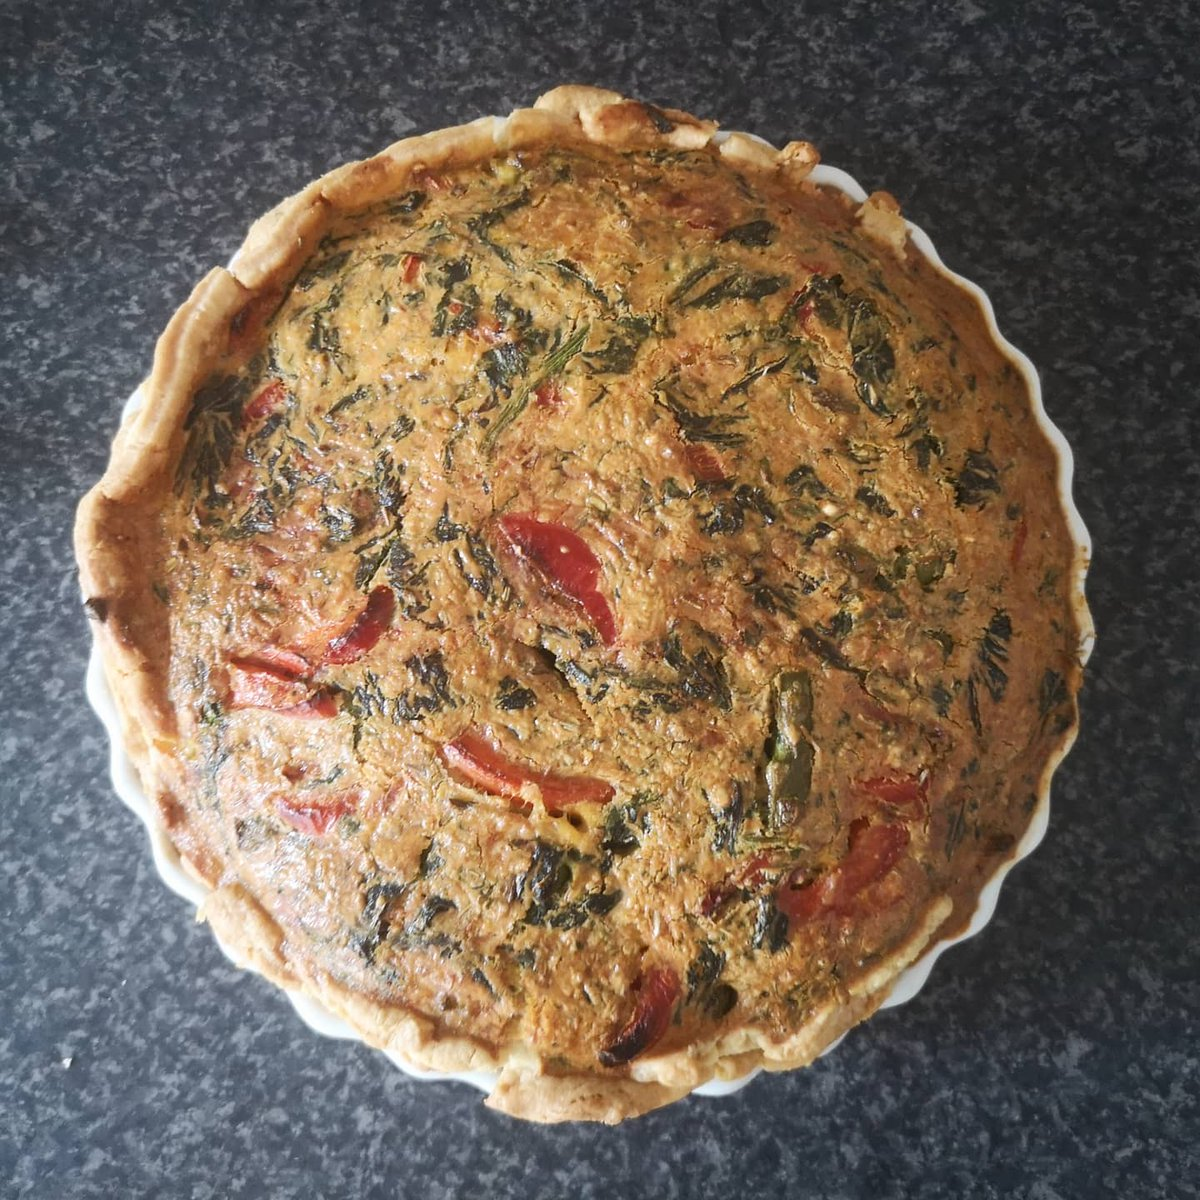 I made a quiche!  Asparagus, red pepper, spinach, paprika and cheese.  #cooking #food #quiche #vegitarian https://t.co/LinJ5v72fp